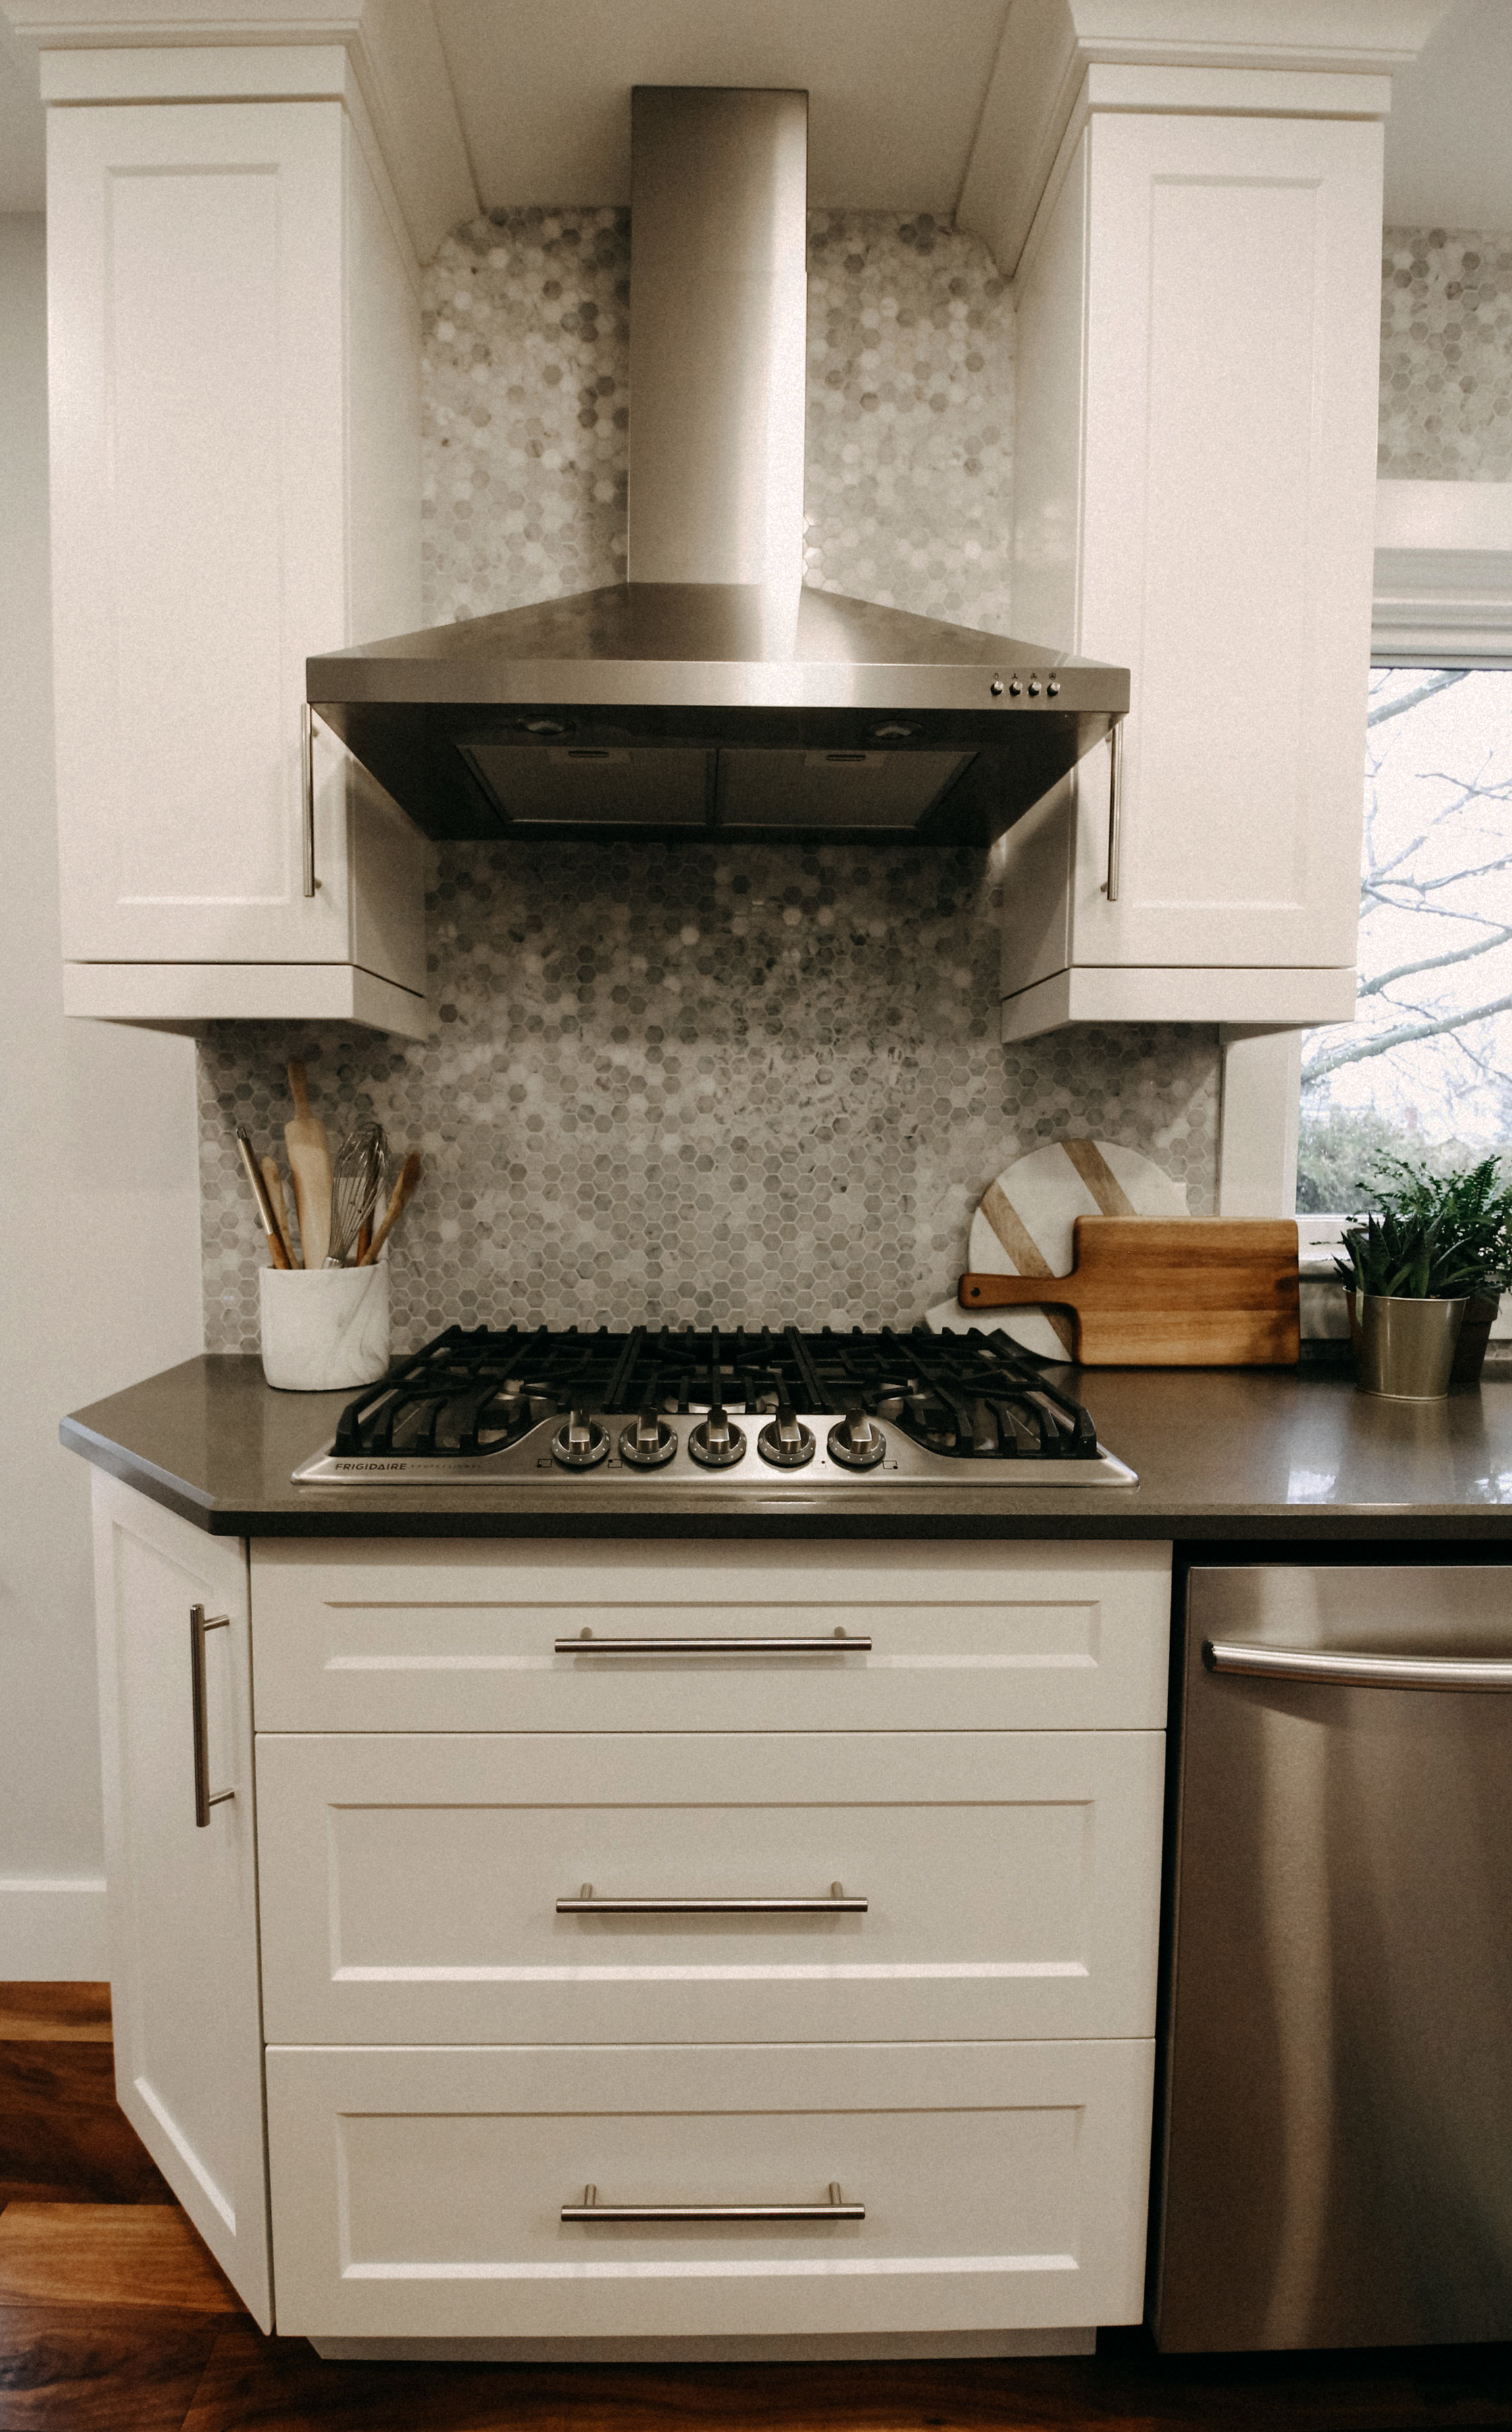 Palmer Kitchen Stove .jpg